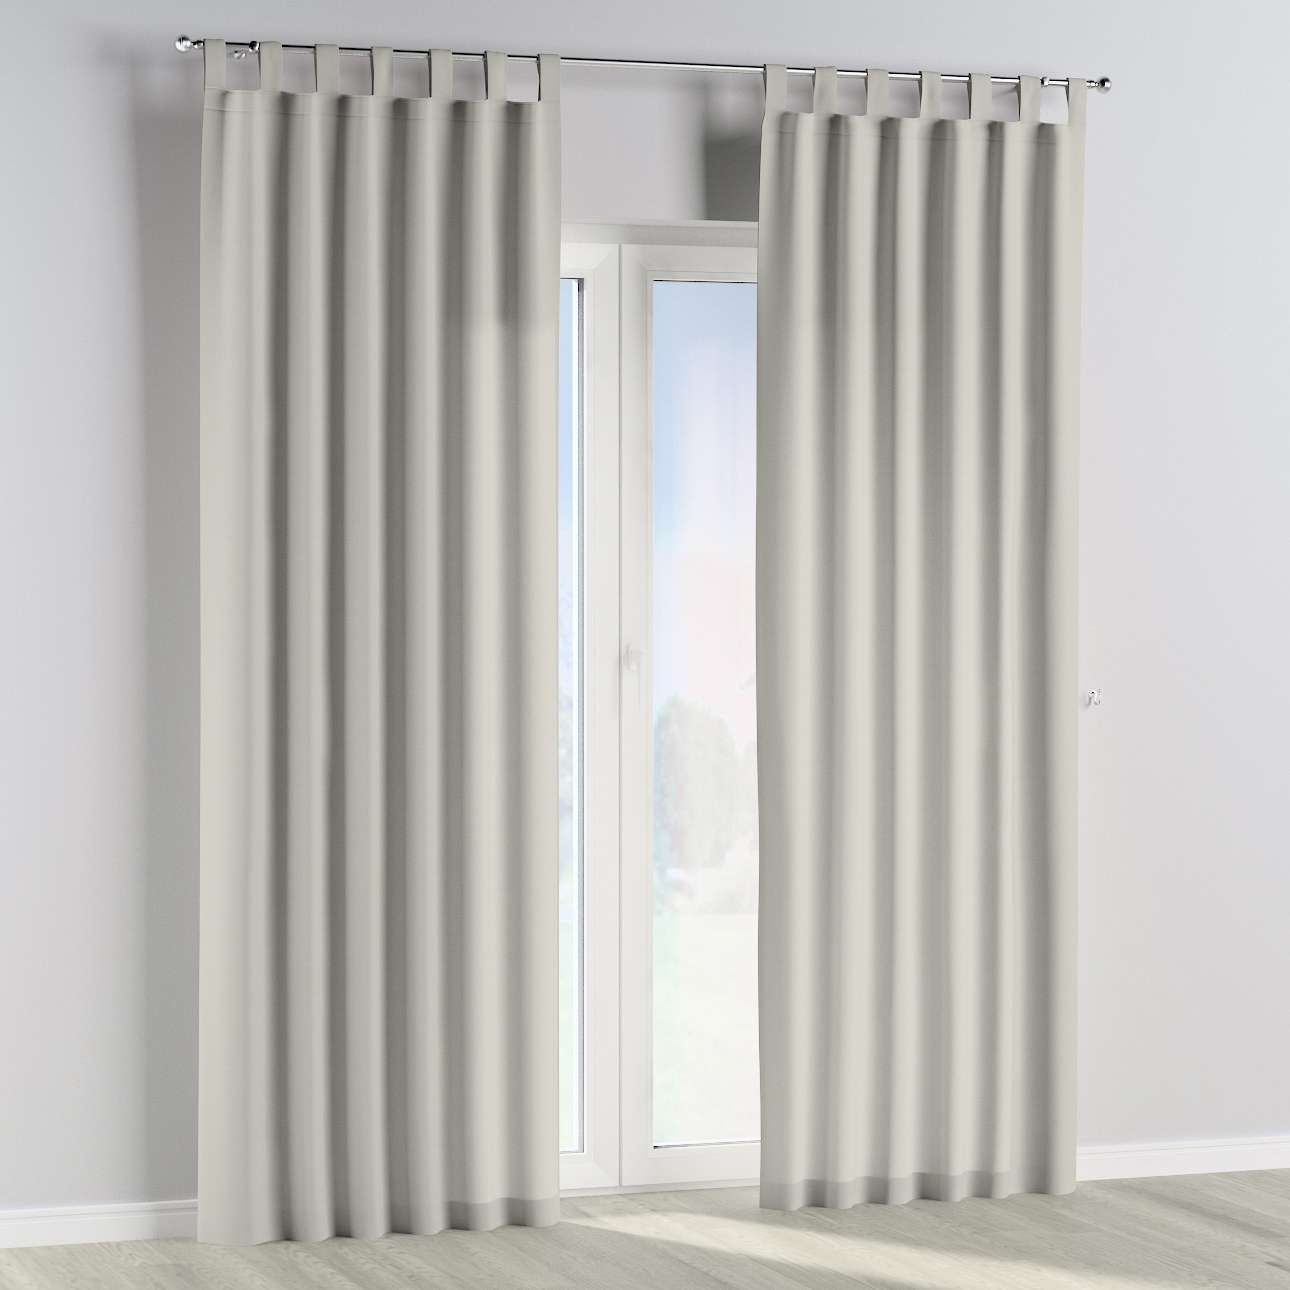 Tab top curtains in collection Cotton Story, fabric: 702-31